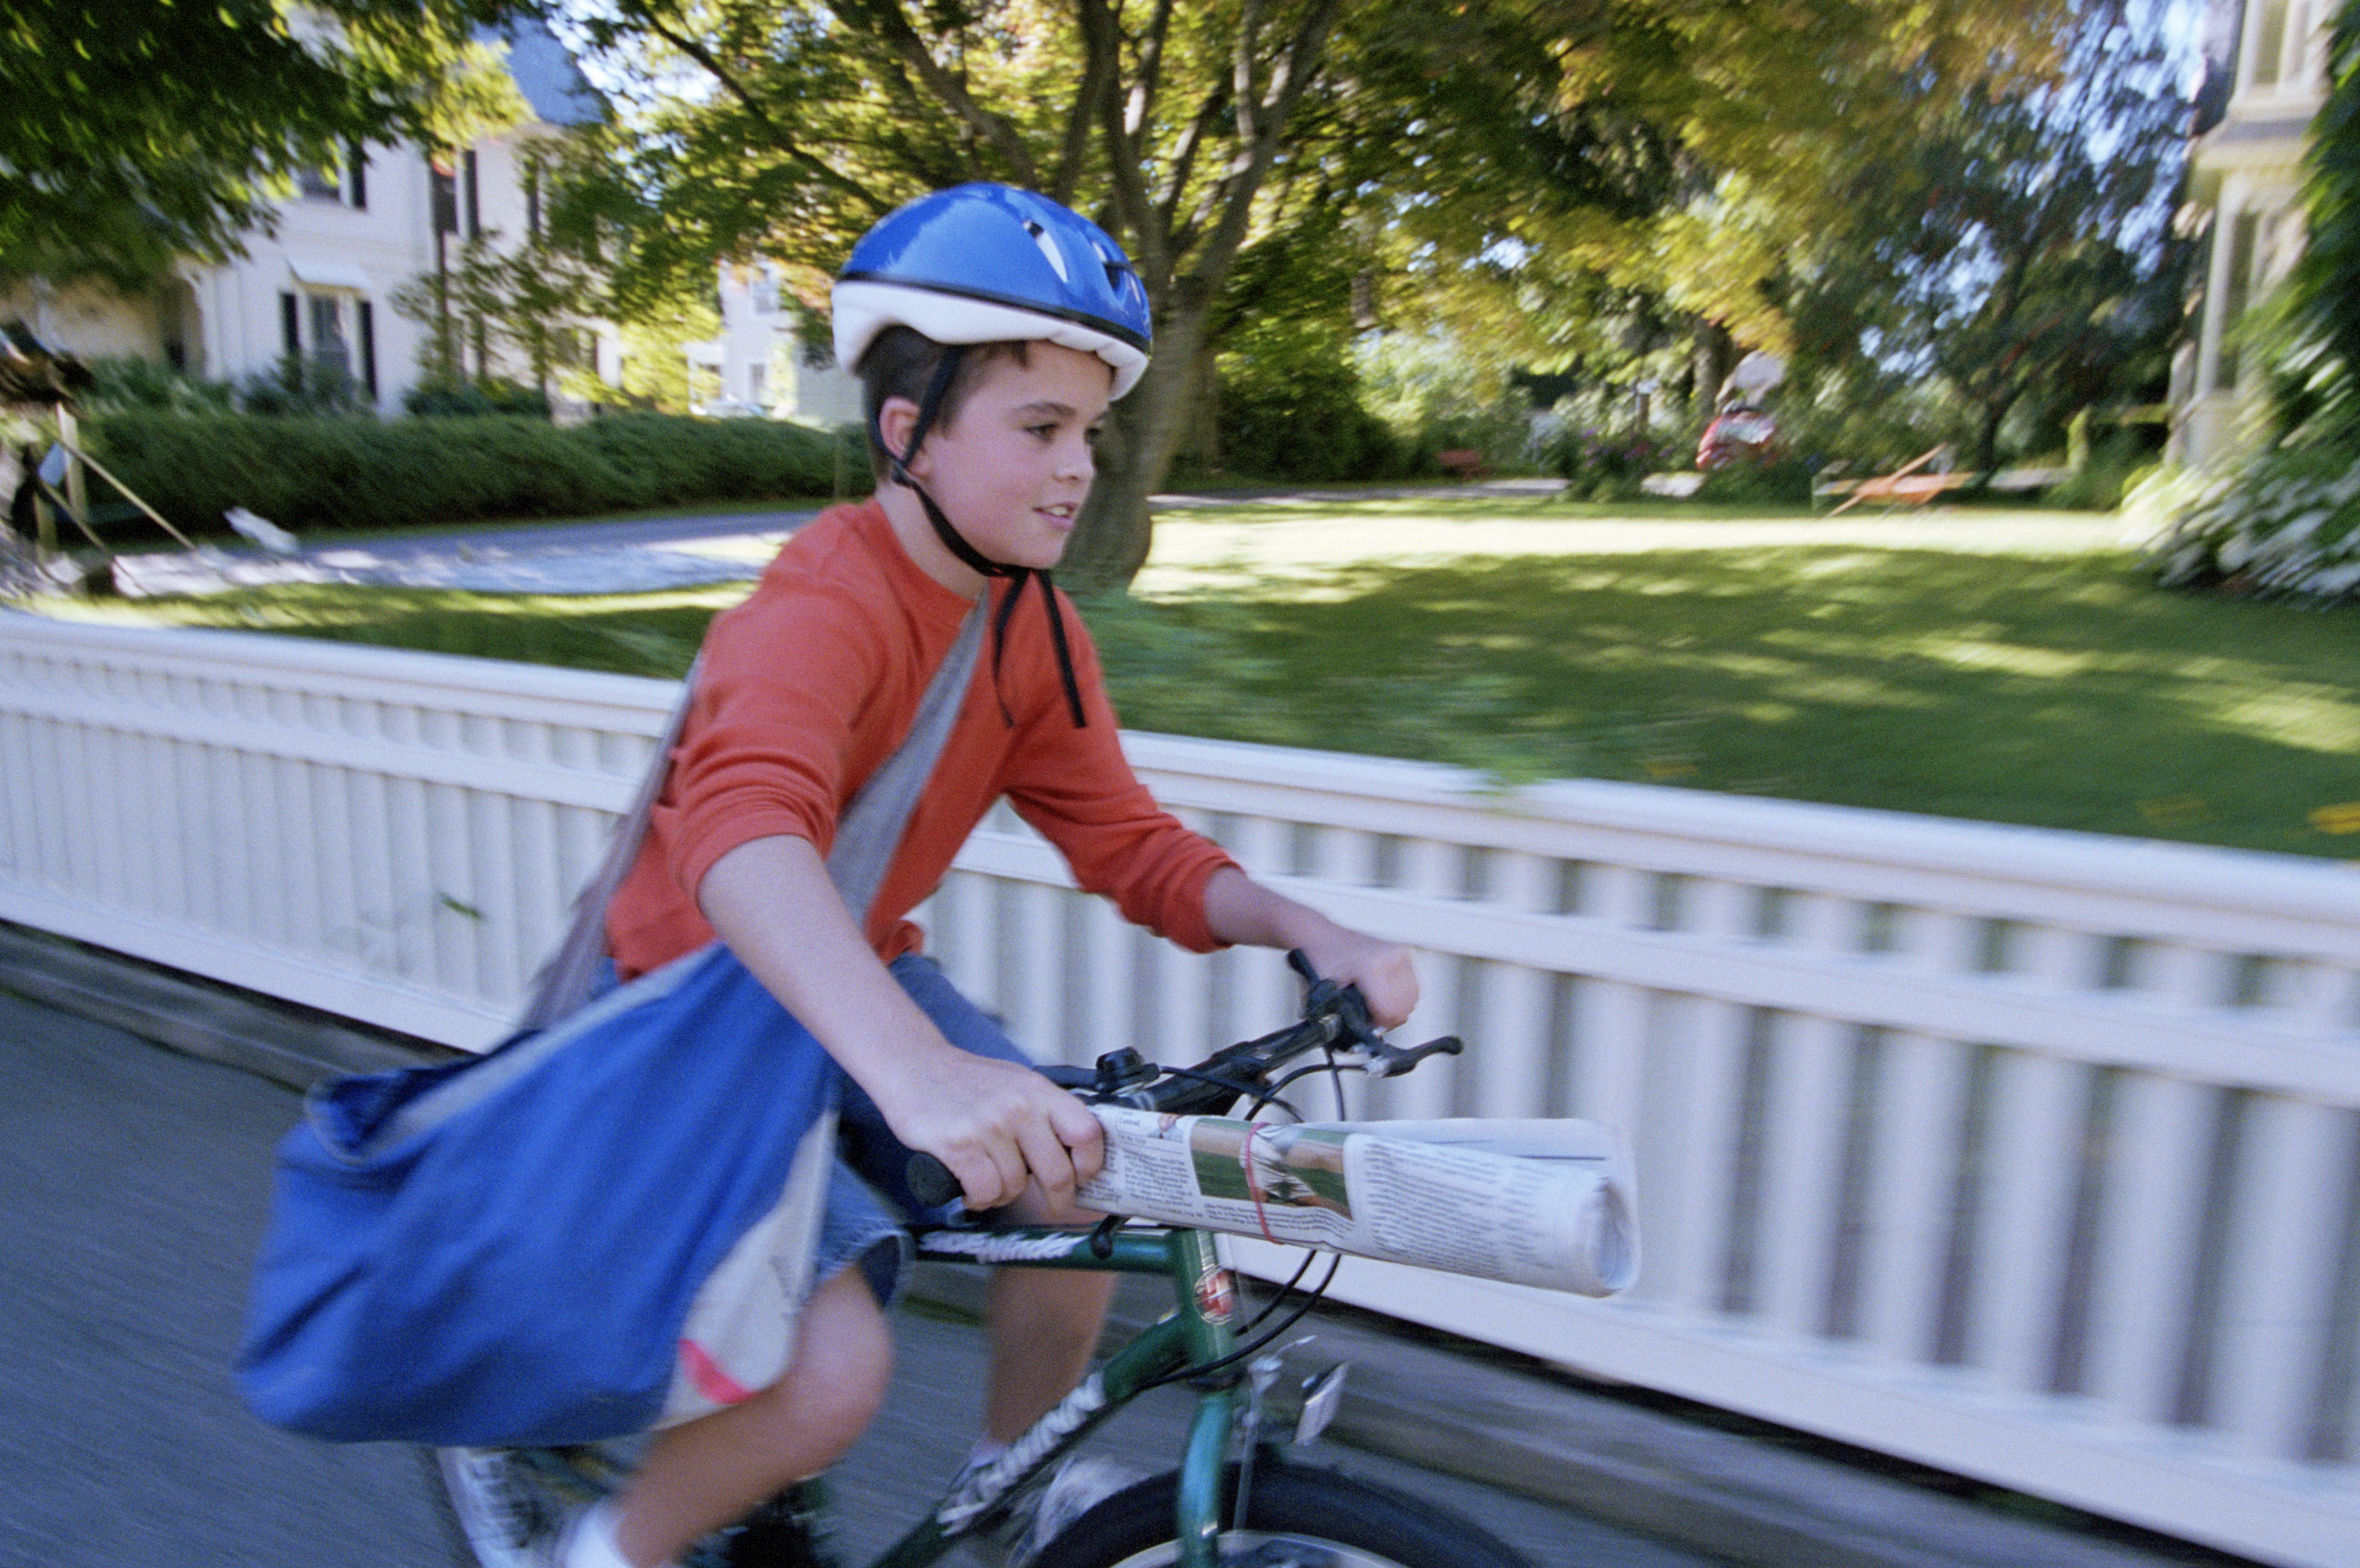 paper route jobs pros and cons for kids